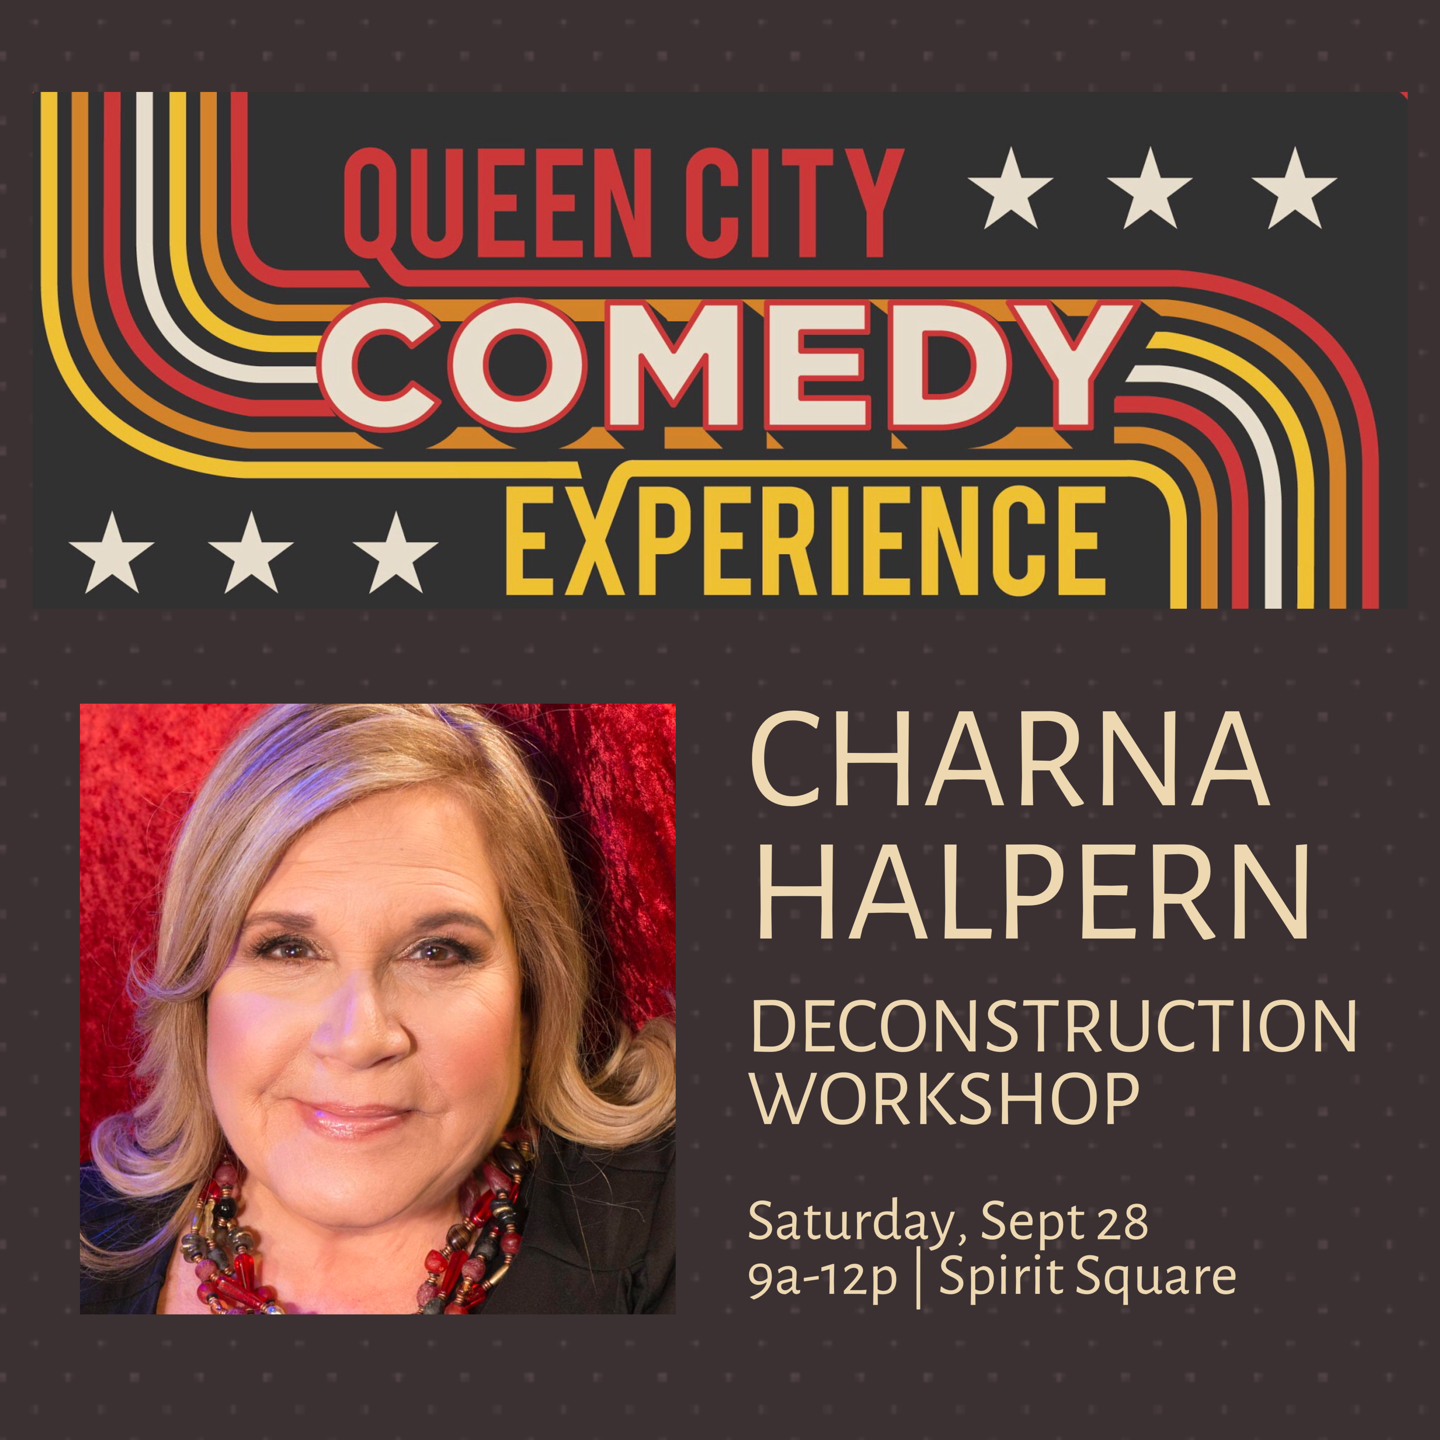 Queen City Comedy Experience Workshop: Long Form Improv with Charna Halpern